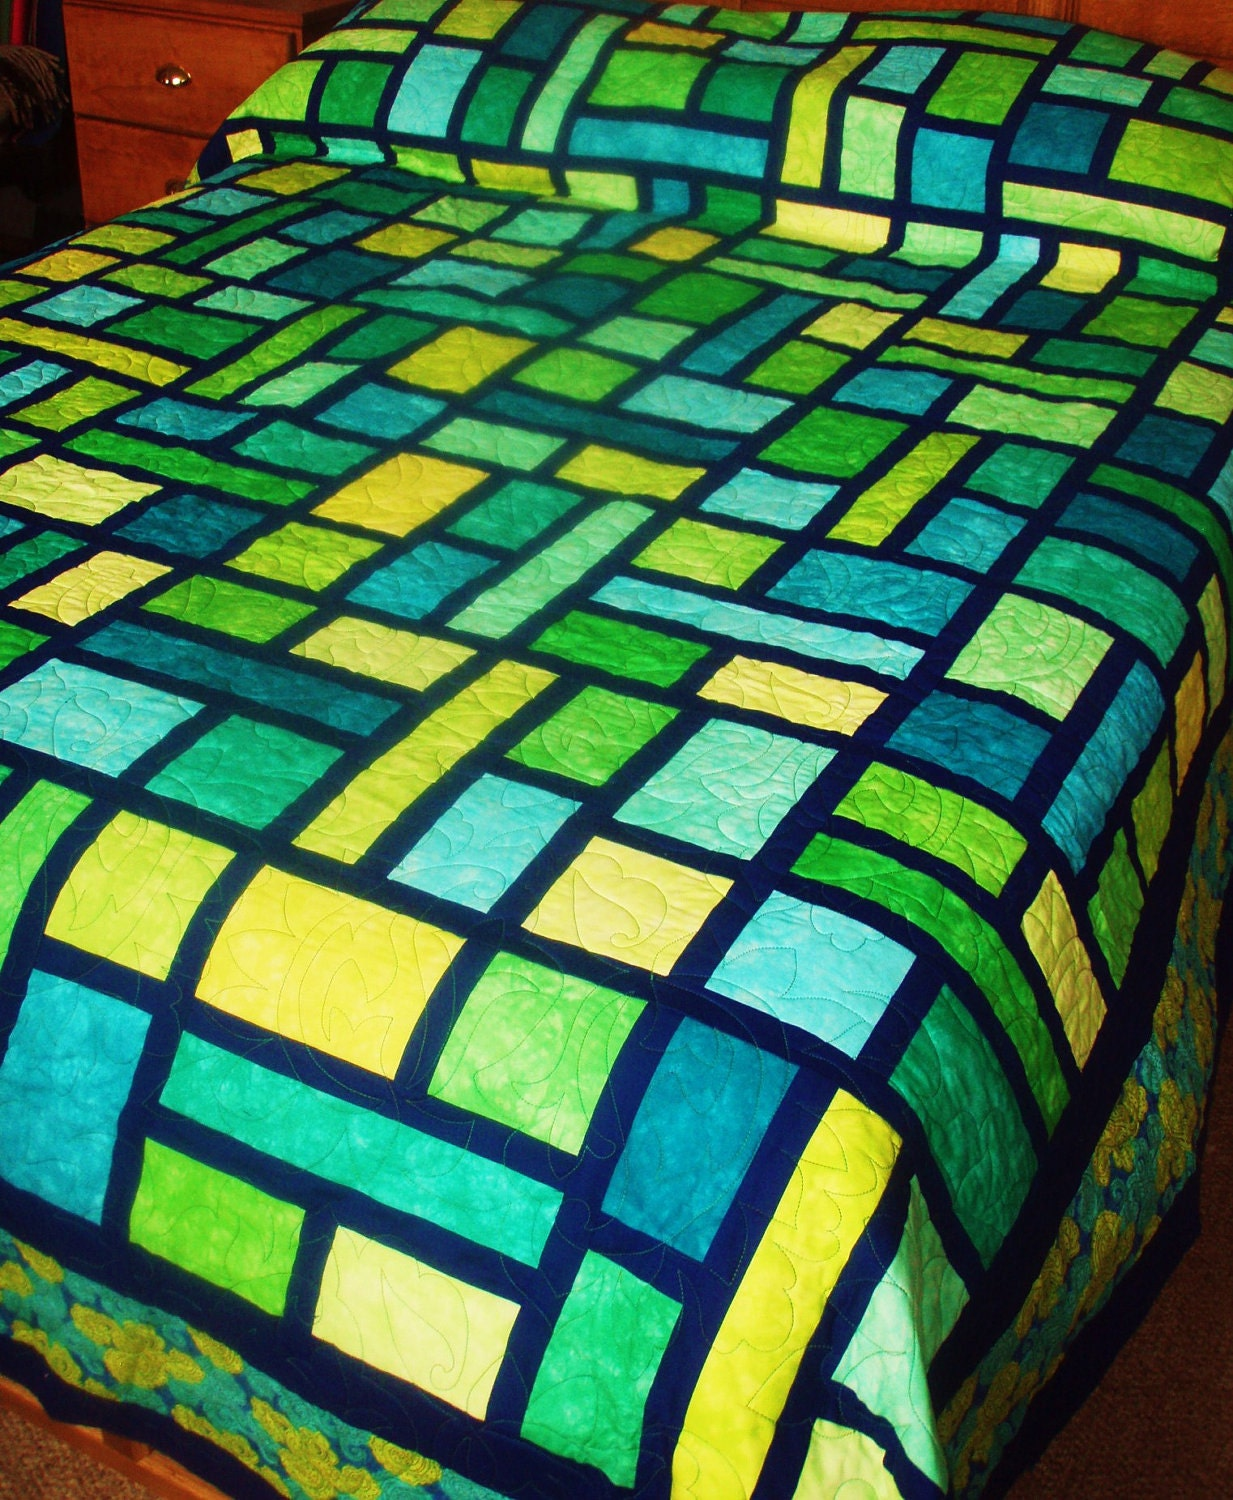 Queen Size Quilt In Mosaic Pattern In Green Yellow And Blue